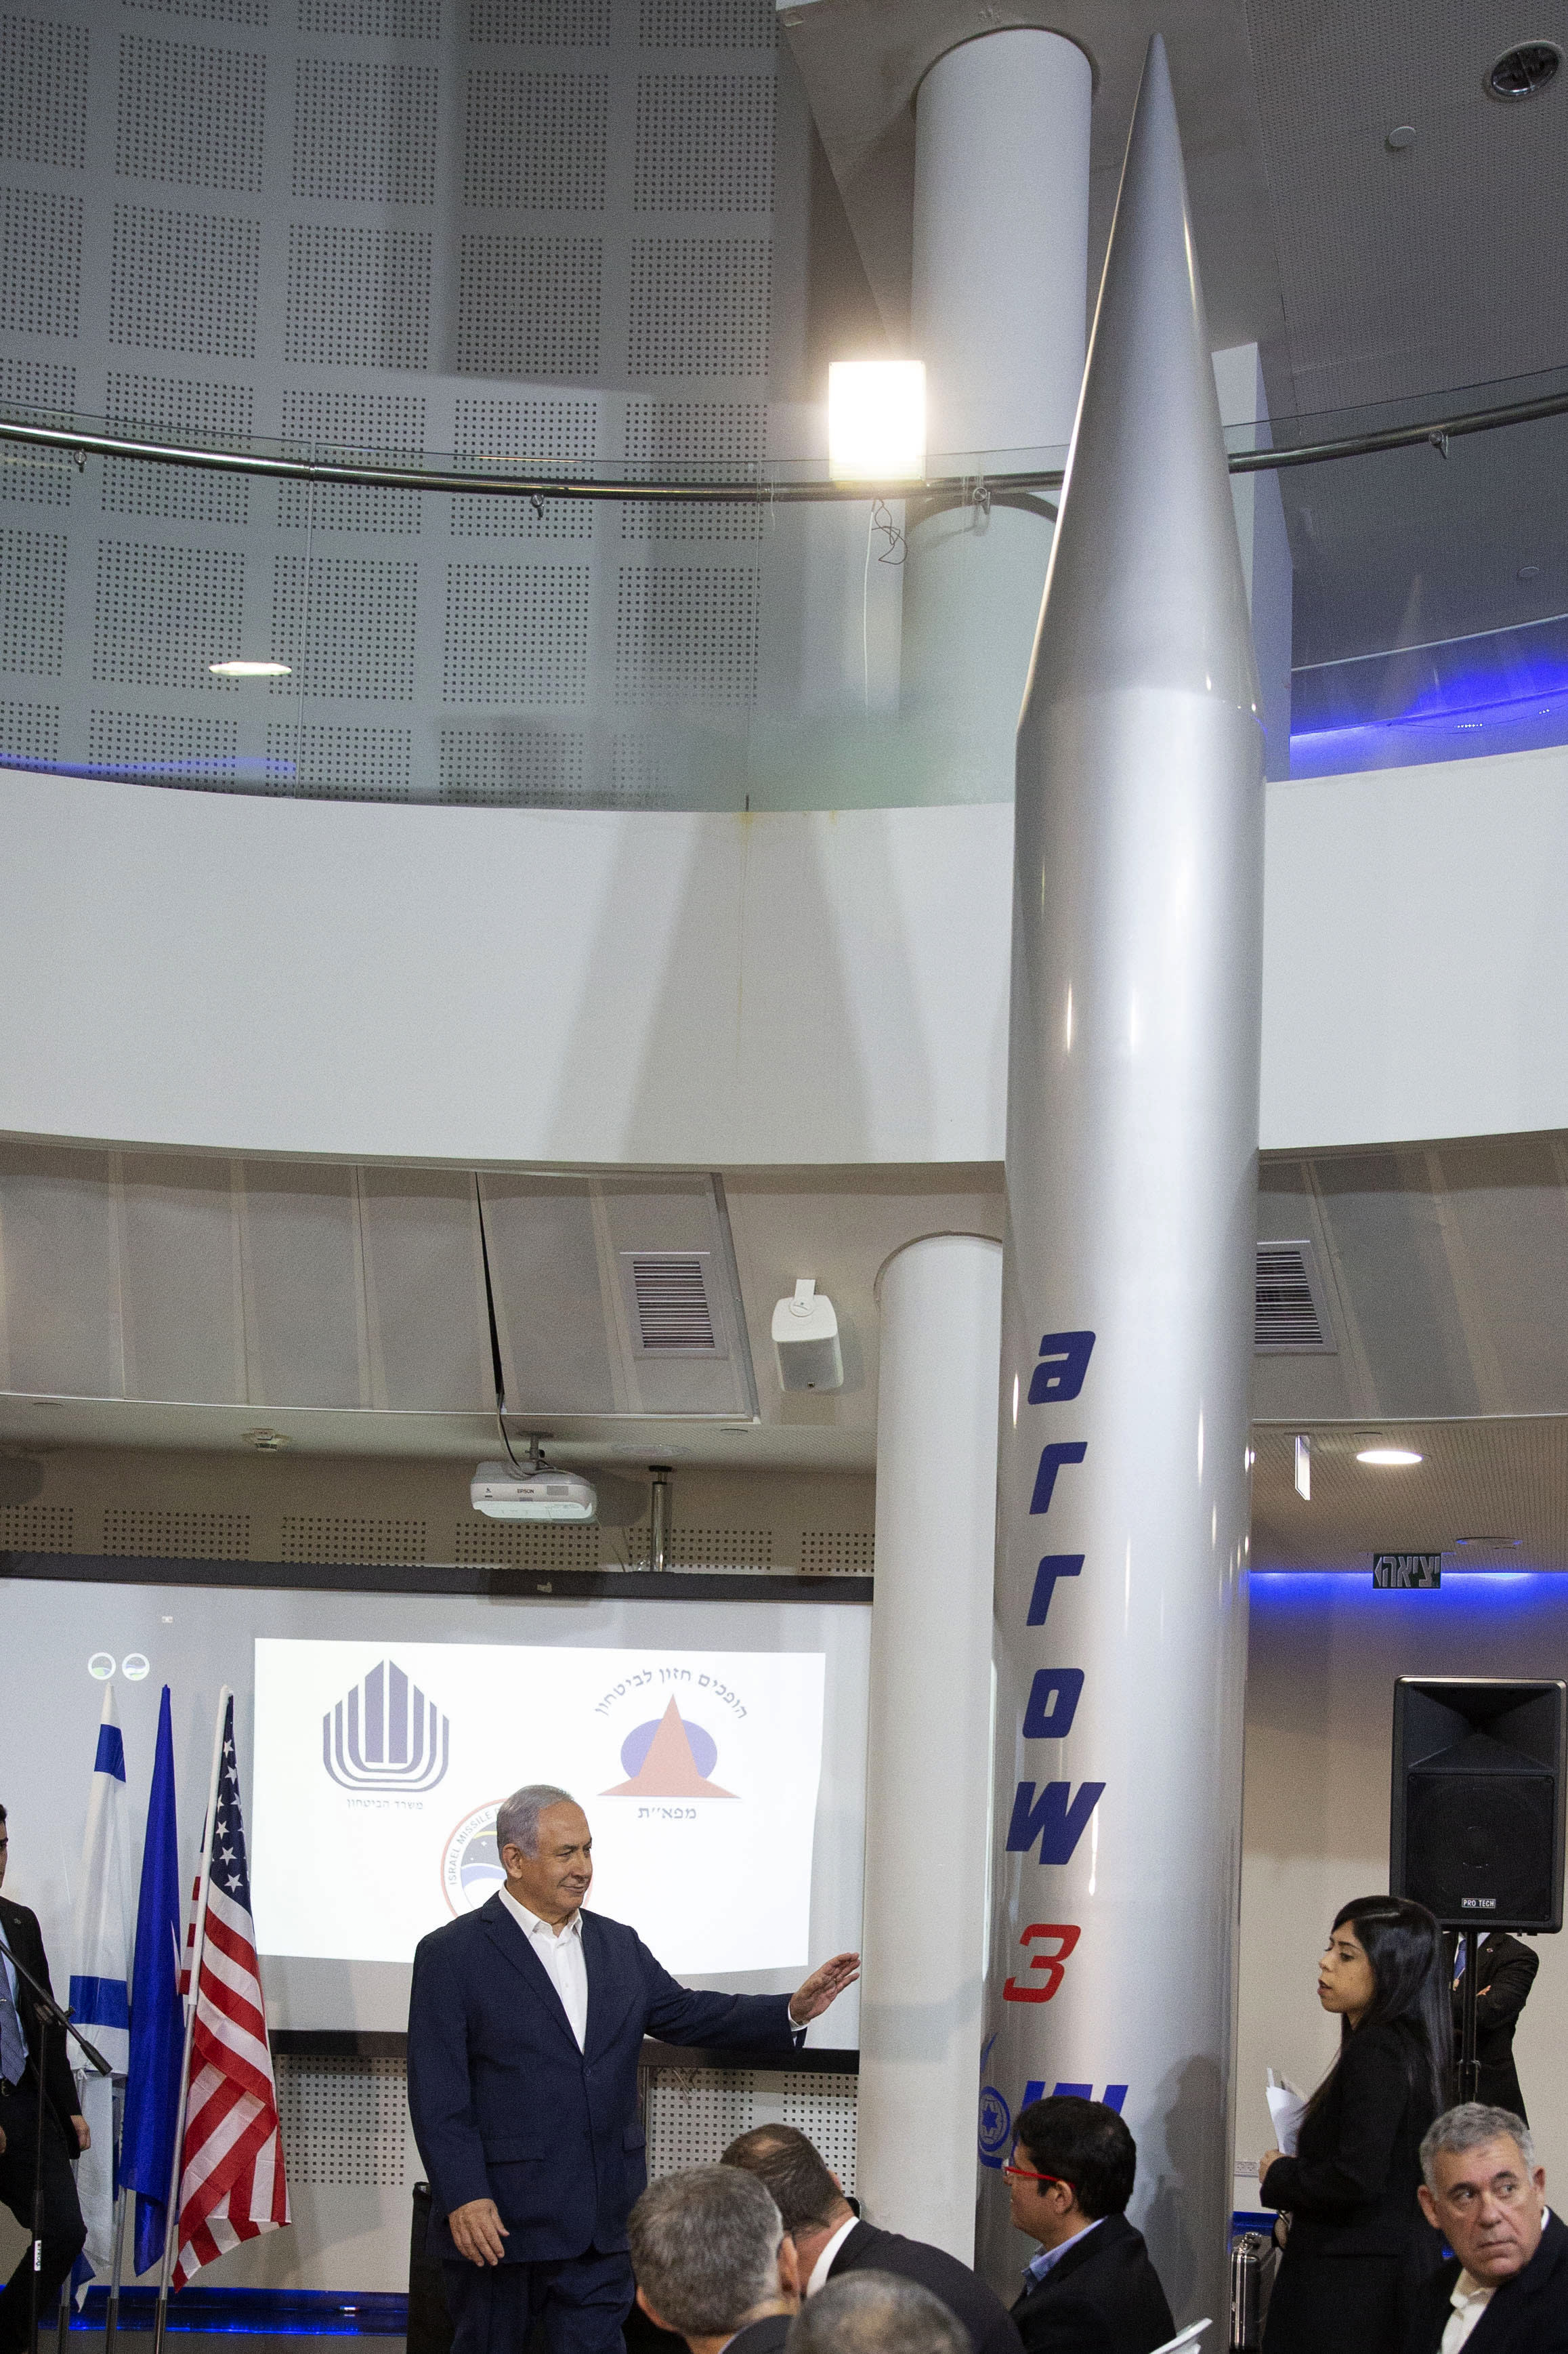 Israeli Prime Minister Benjamin Netanyahu speaks during a visit to the Israel Aerospace Industries (IAI) MLM Division plant in Be'er Ya'akov, Israel, Tuesday, Jan. 22, 2019. Israel said Tuesday that it has successfully tested the Arrow-3 interceptor, the country's advanced missile defense system capable of defending against ballistic missile threats outside the atmosphere. (Tomer Appelbaum/Pool Photo via AP)